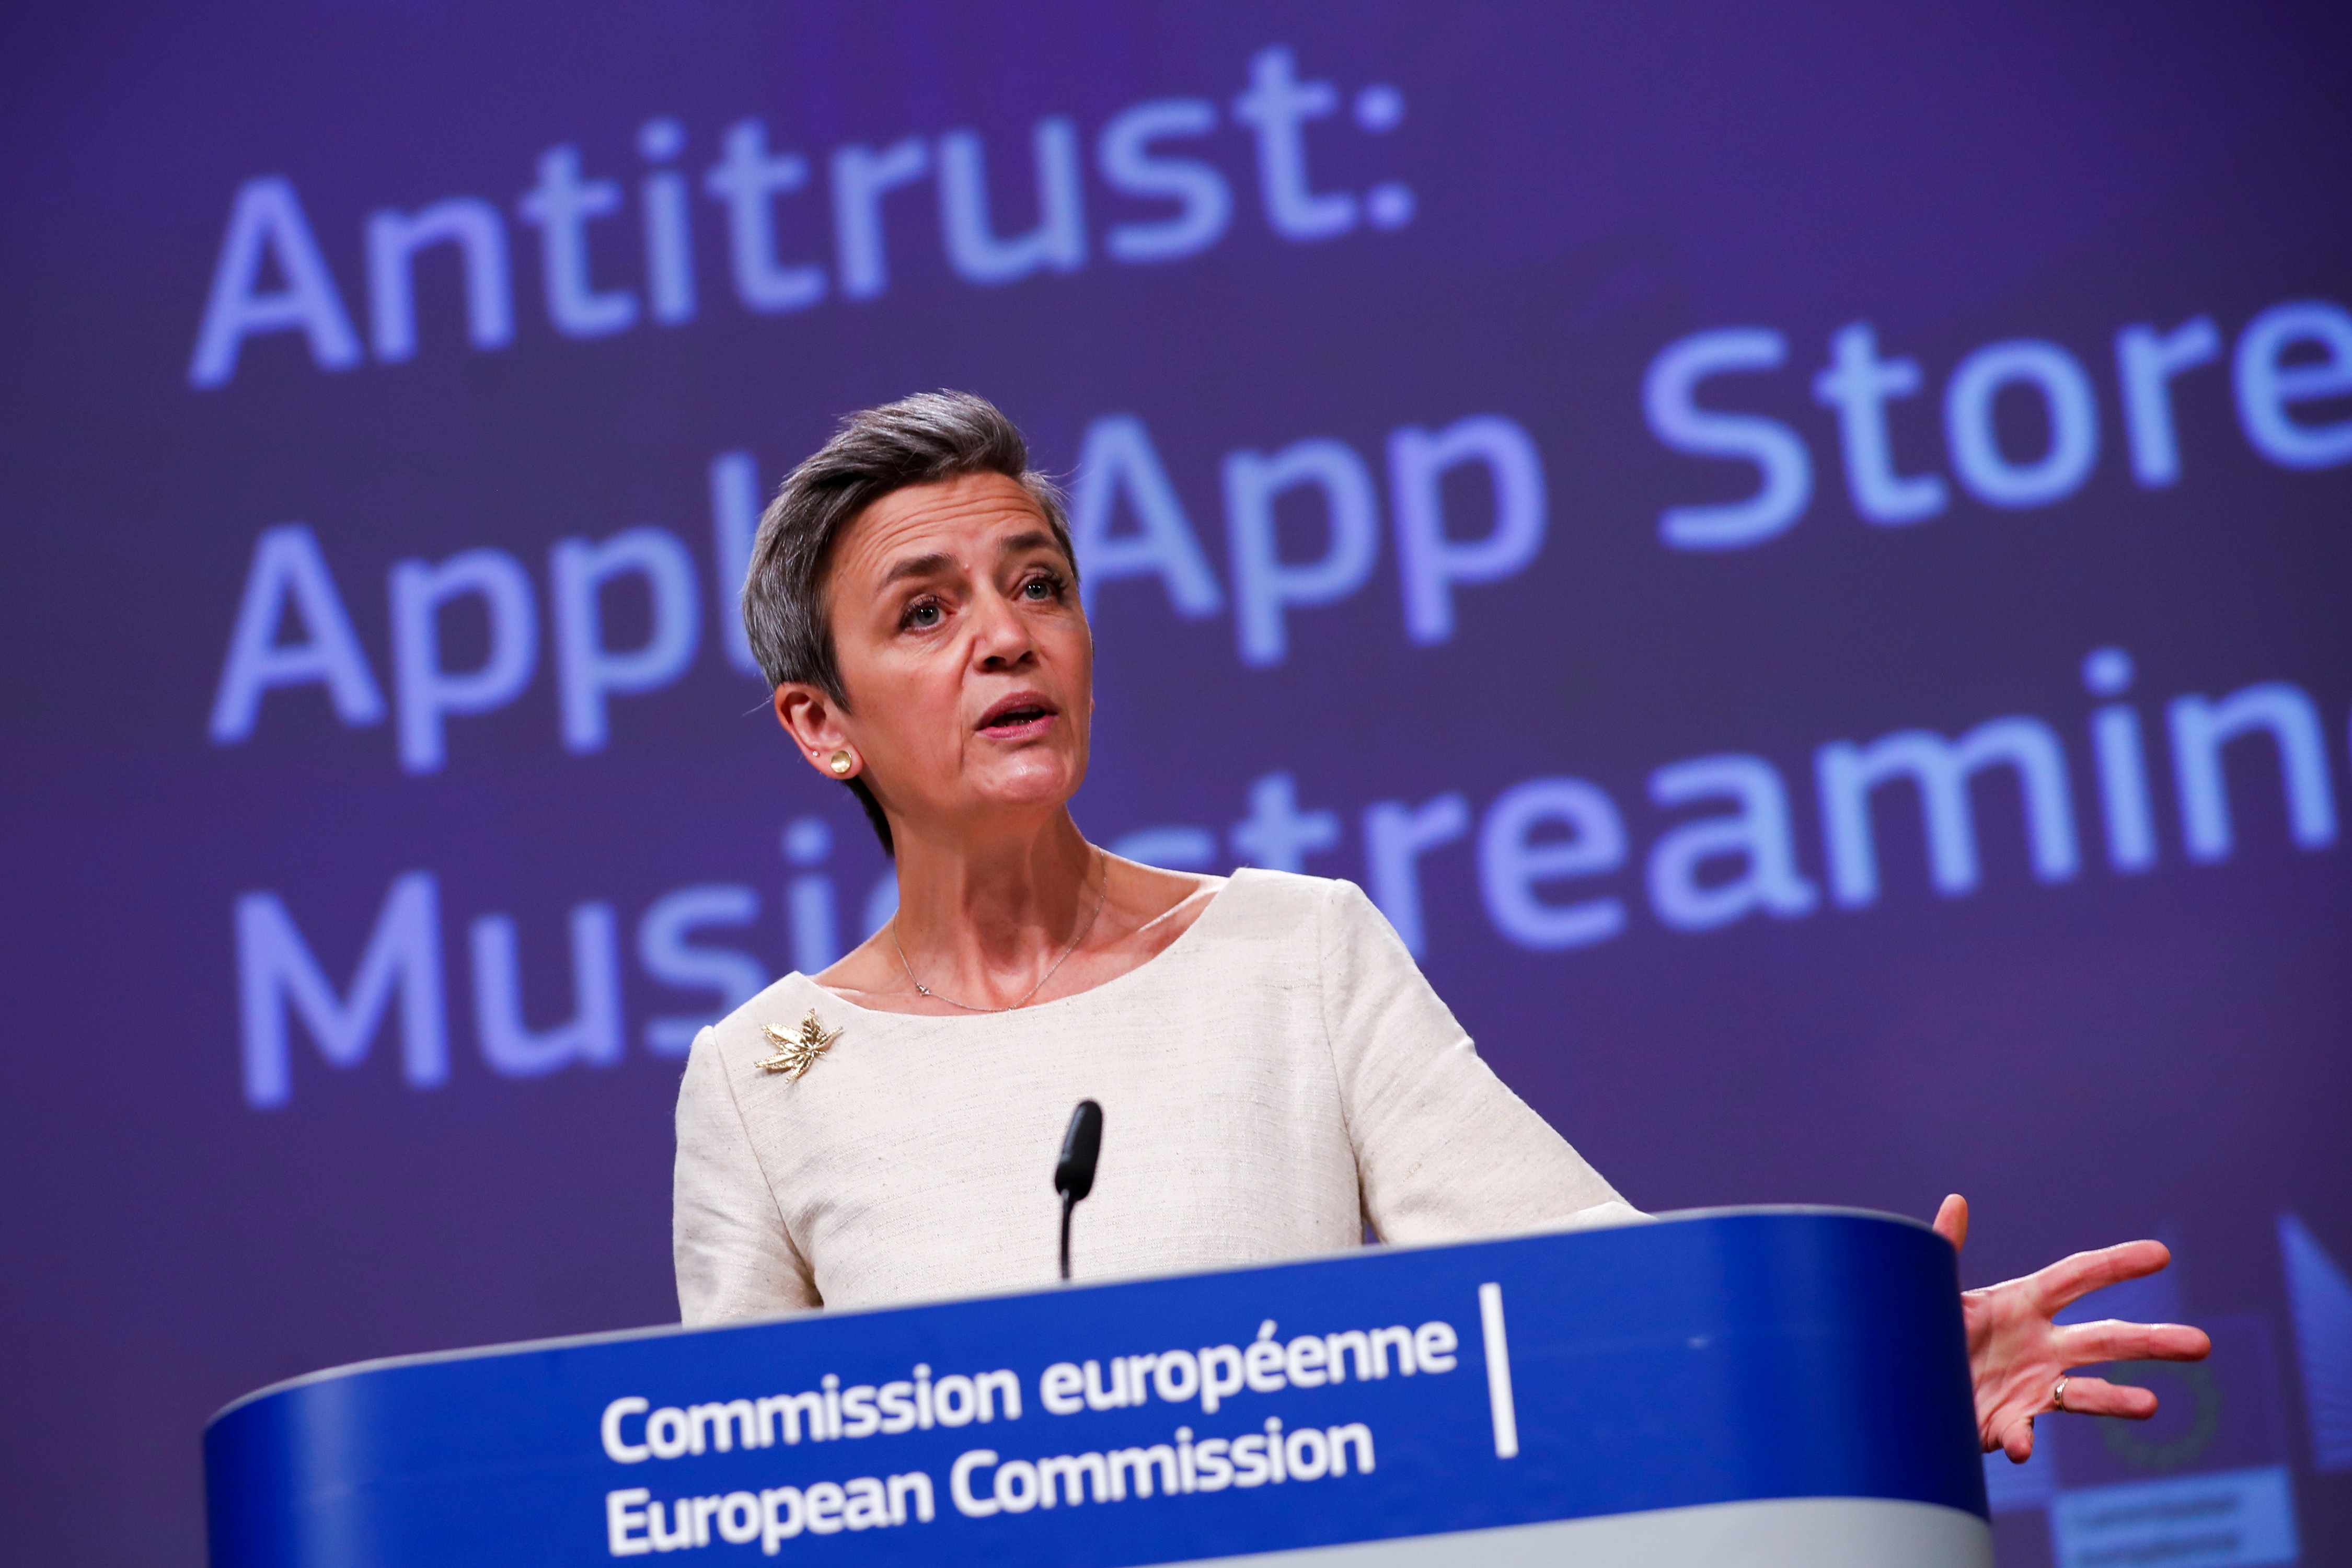 European Commissioner for Europe fit for the Digital Age Margrethe Vestager speaks during an online news conference on Apple anti trust case at the EU headquarters in Brussels, Belgium April 30, 2021. Francisco Seco/Pool via REUTERS